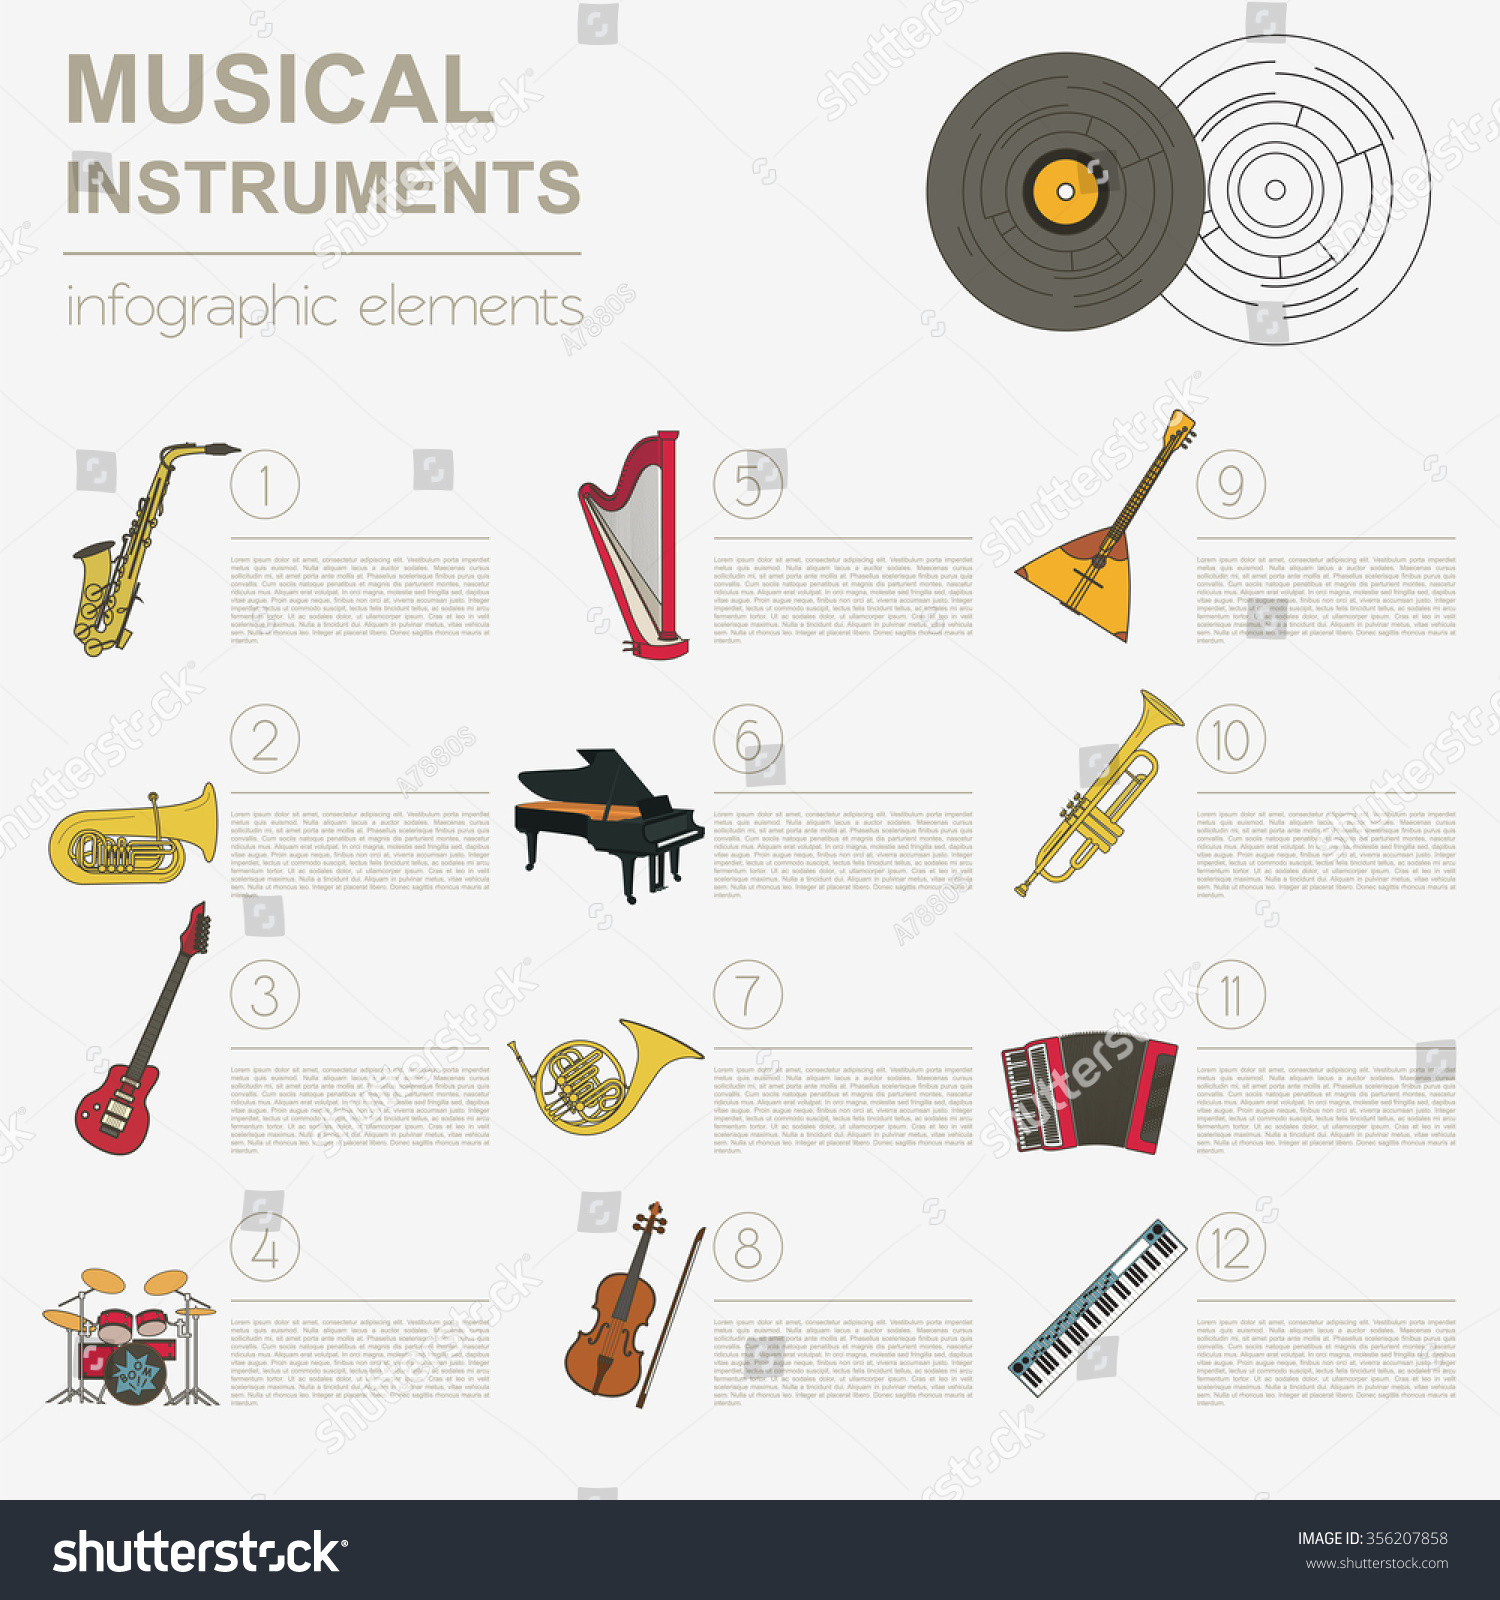 Worksheet Types Of Instruments musical instruments graphic template all types stock vector of infographic illustration